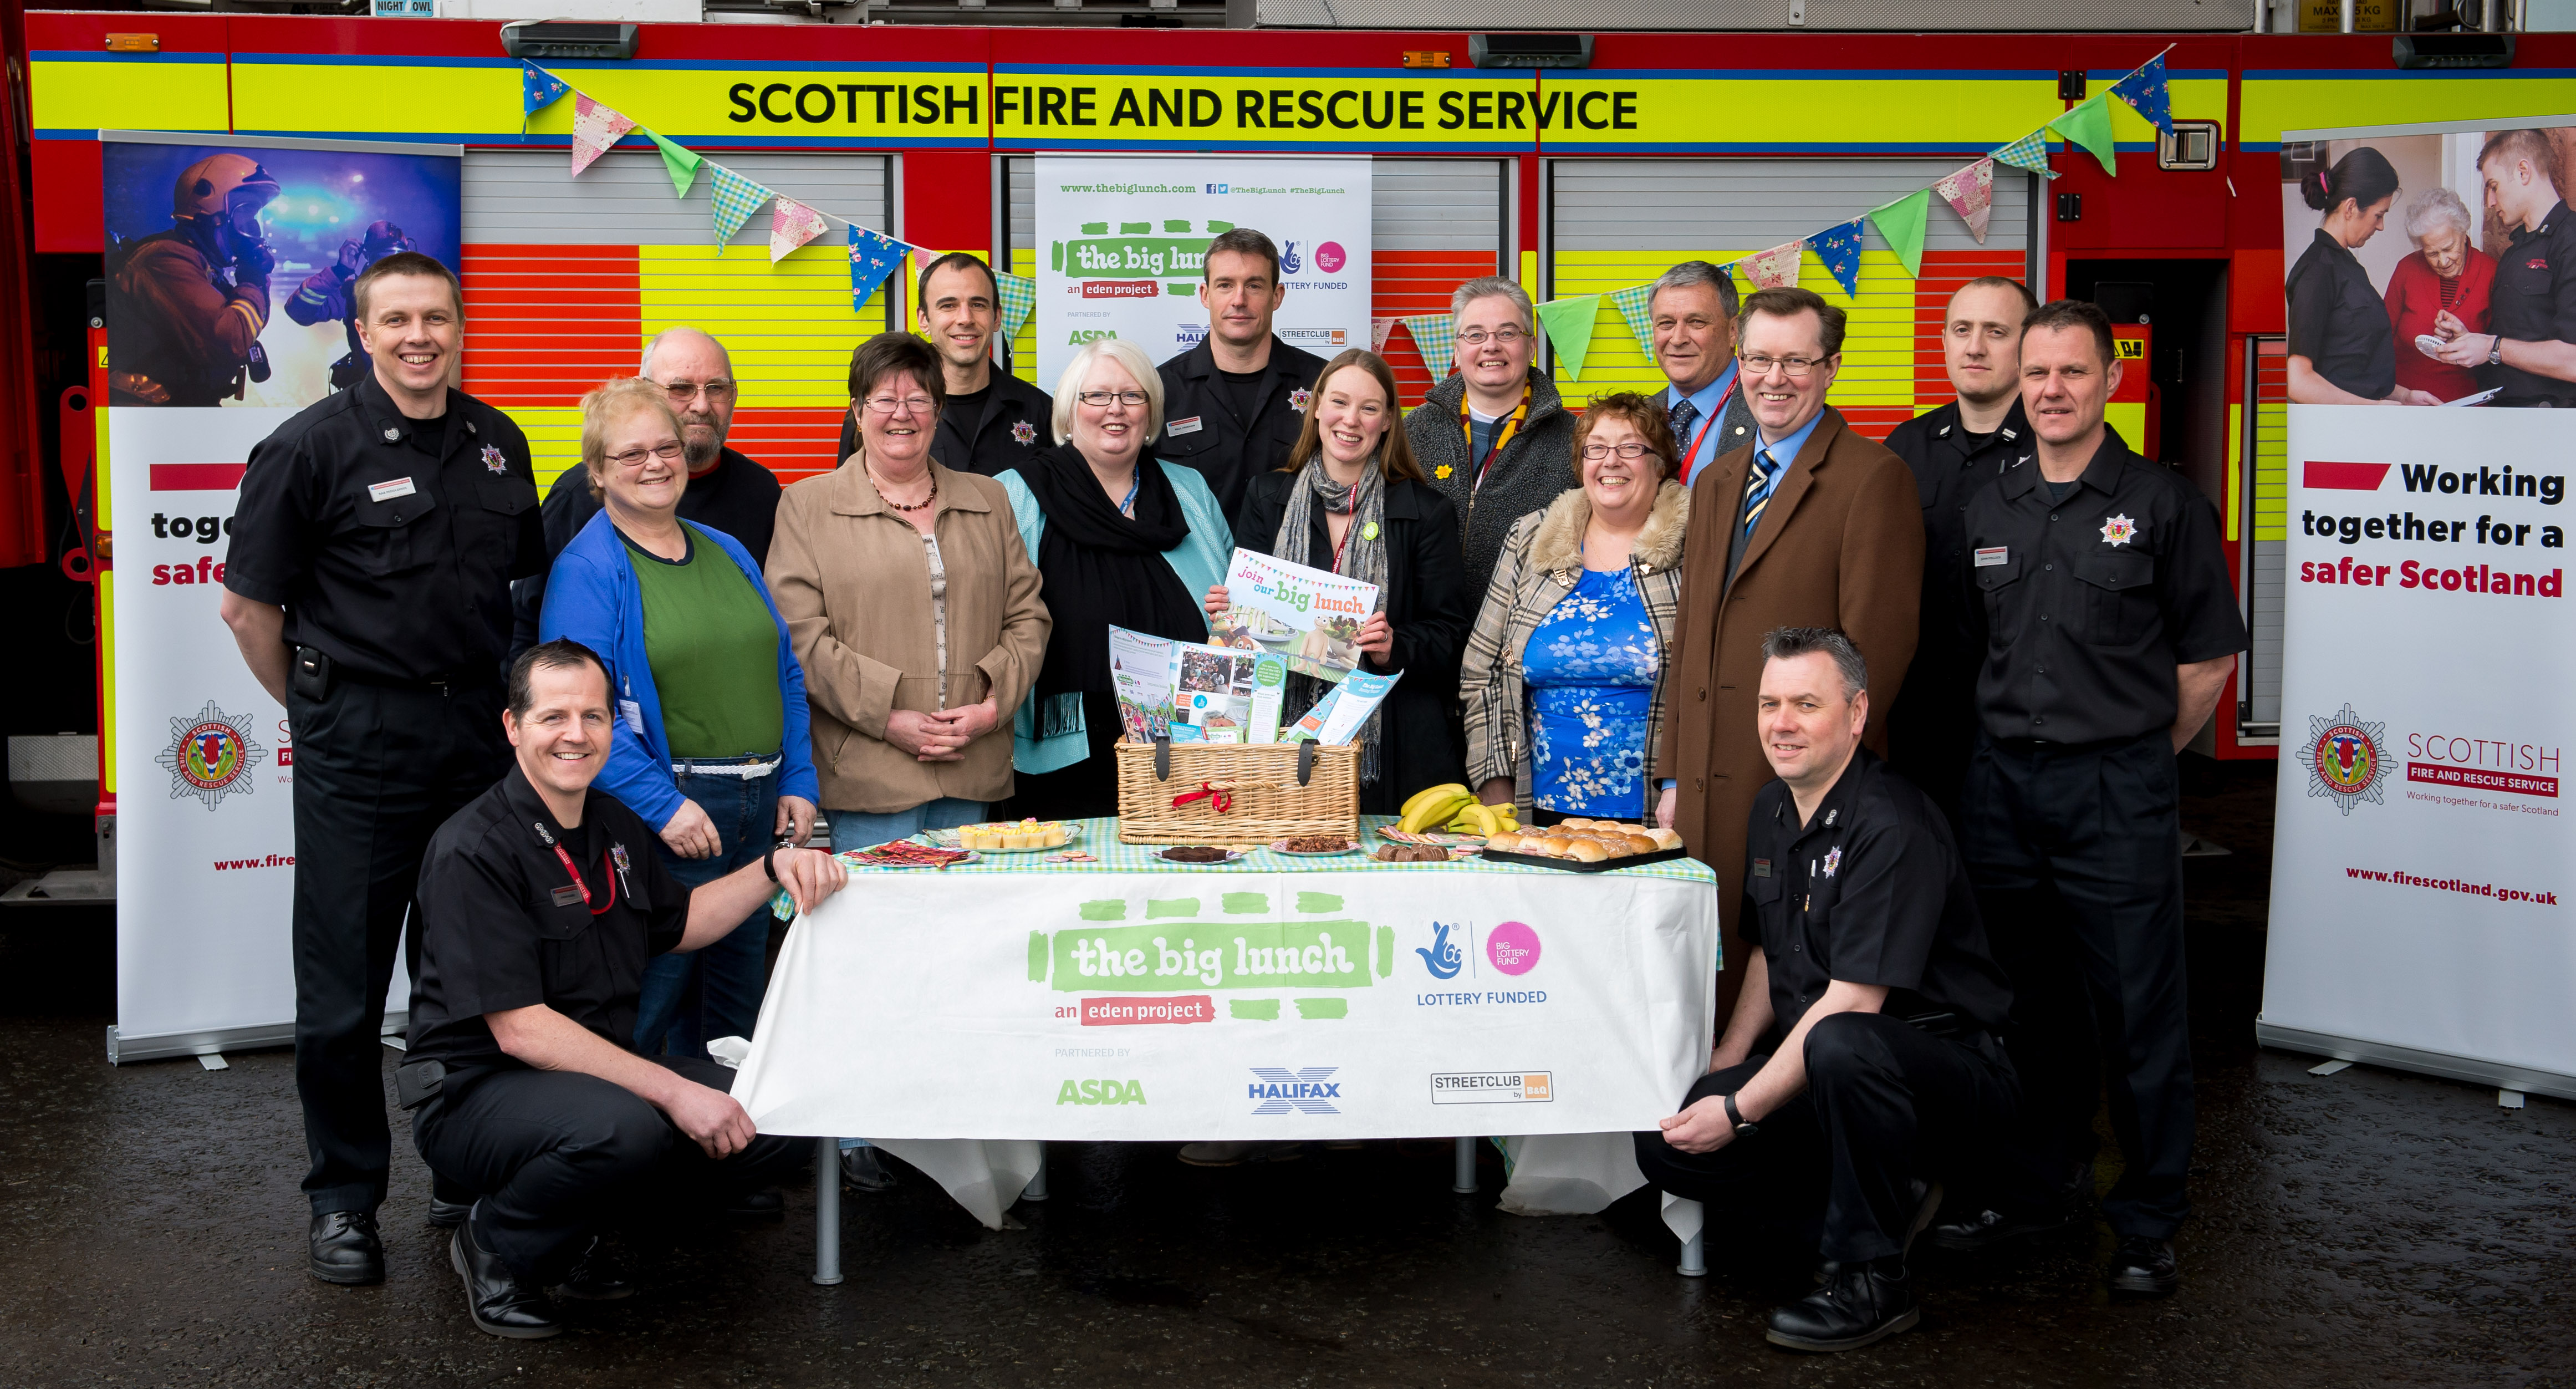 Perth's friendly fire service crew launch plans for Big Lunch